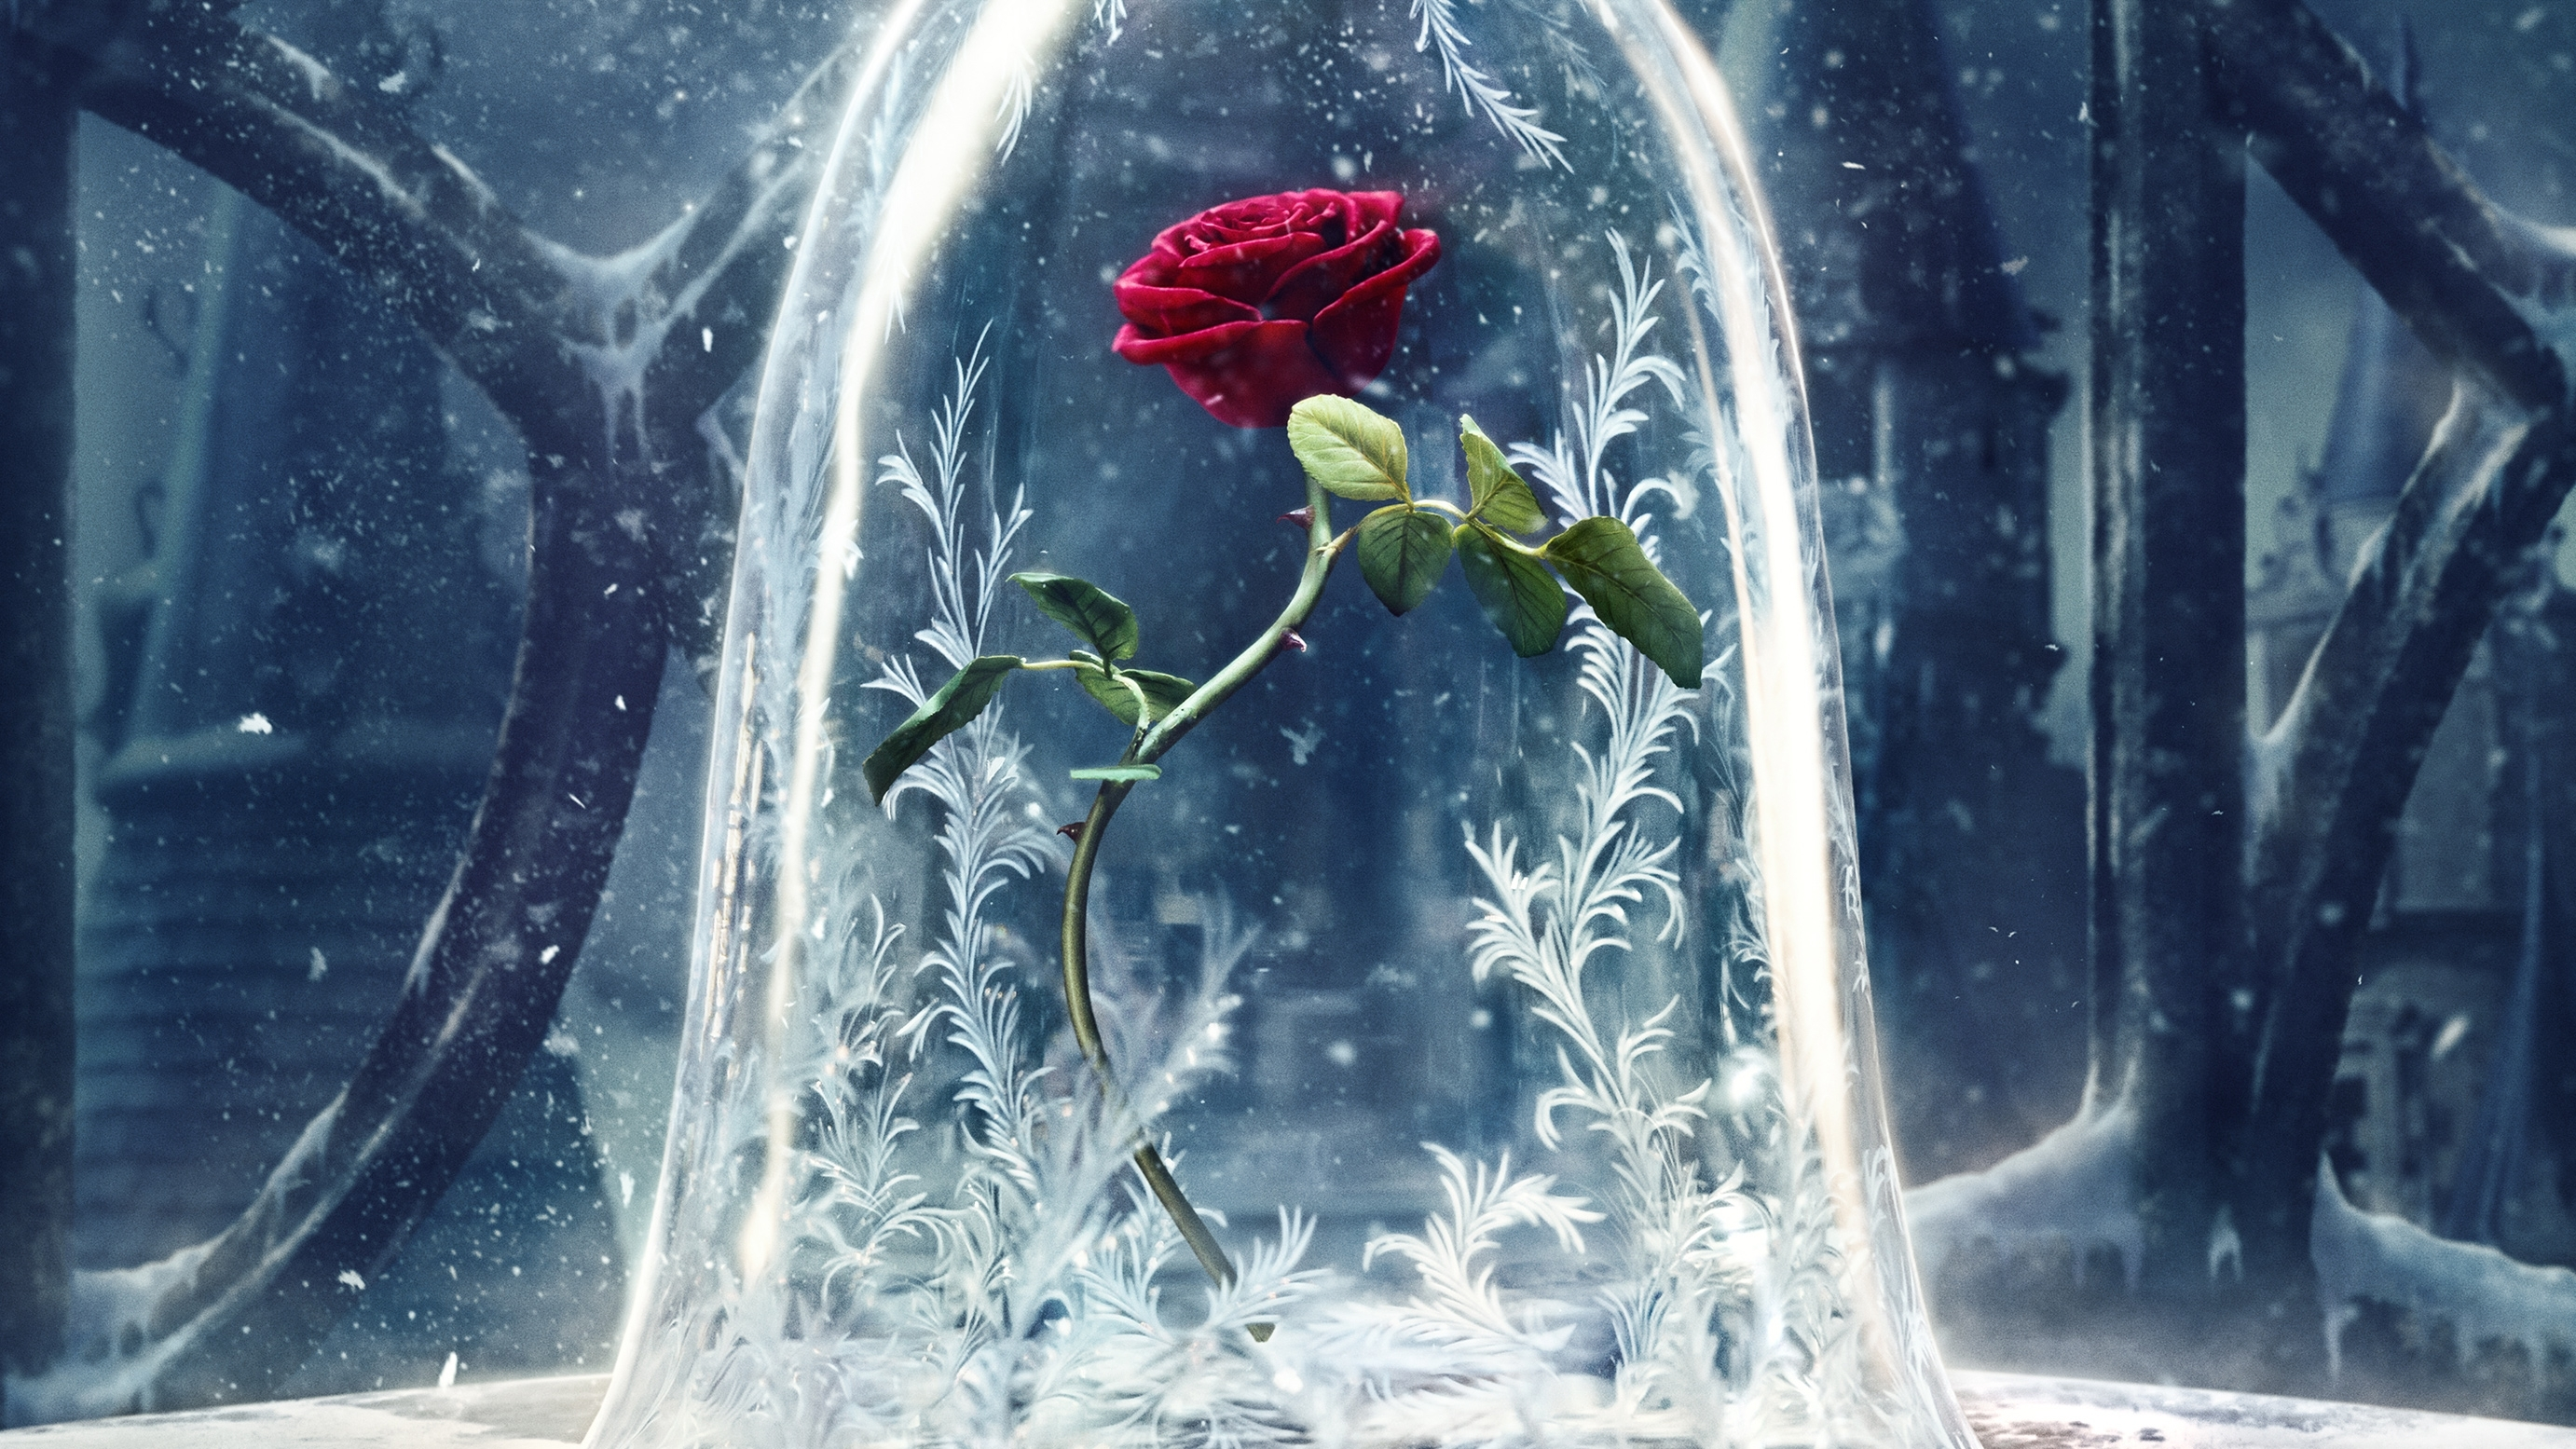 wallpaper beauty and the beast, 2017 movies, disney, rose, movies, #1261